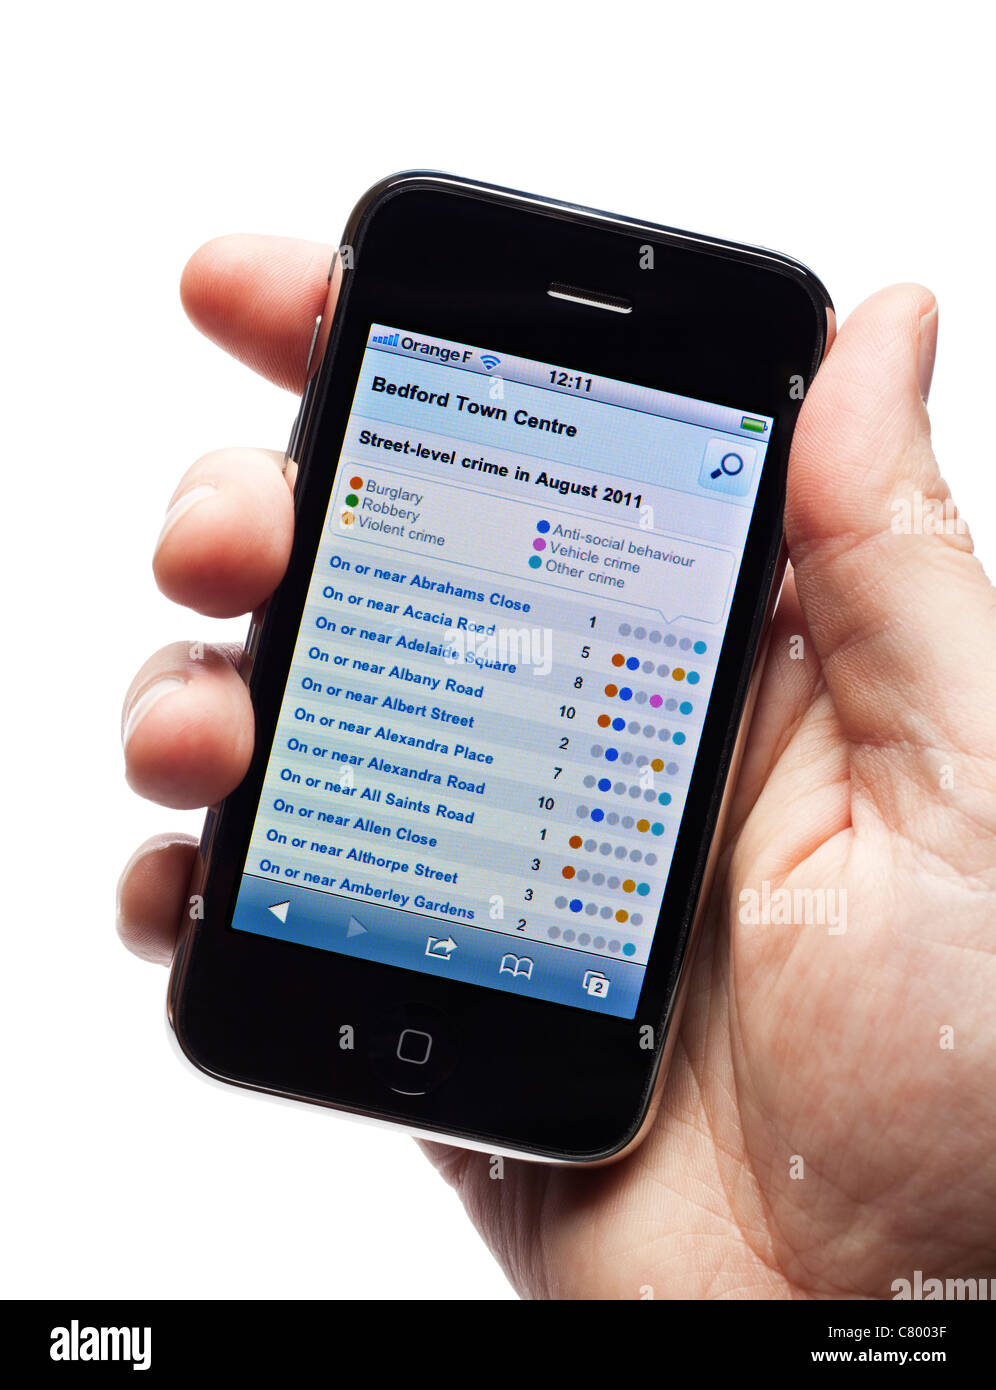 Hand holding iPhone showing the UK Police Crime Map information website - Stock Image